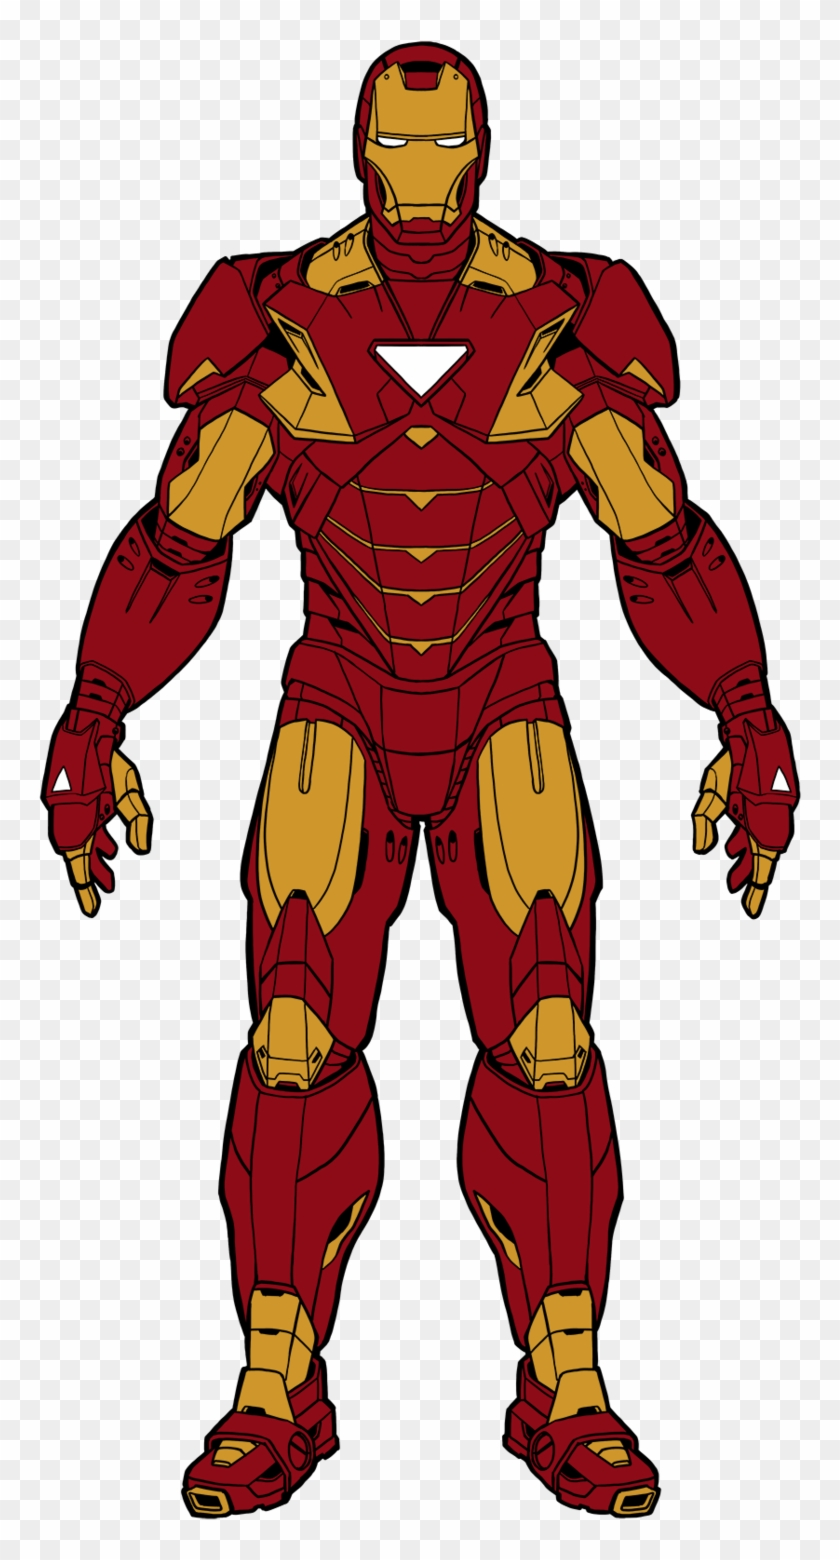 Iron Man Cartoon Drawing Color Avengers Iron Man Toy Free Transparent Png Clipart Images Download